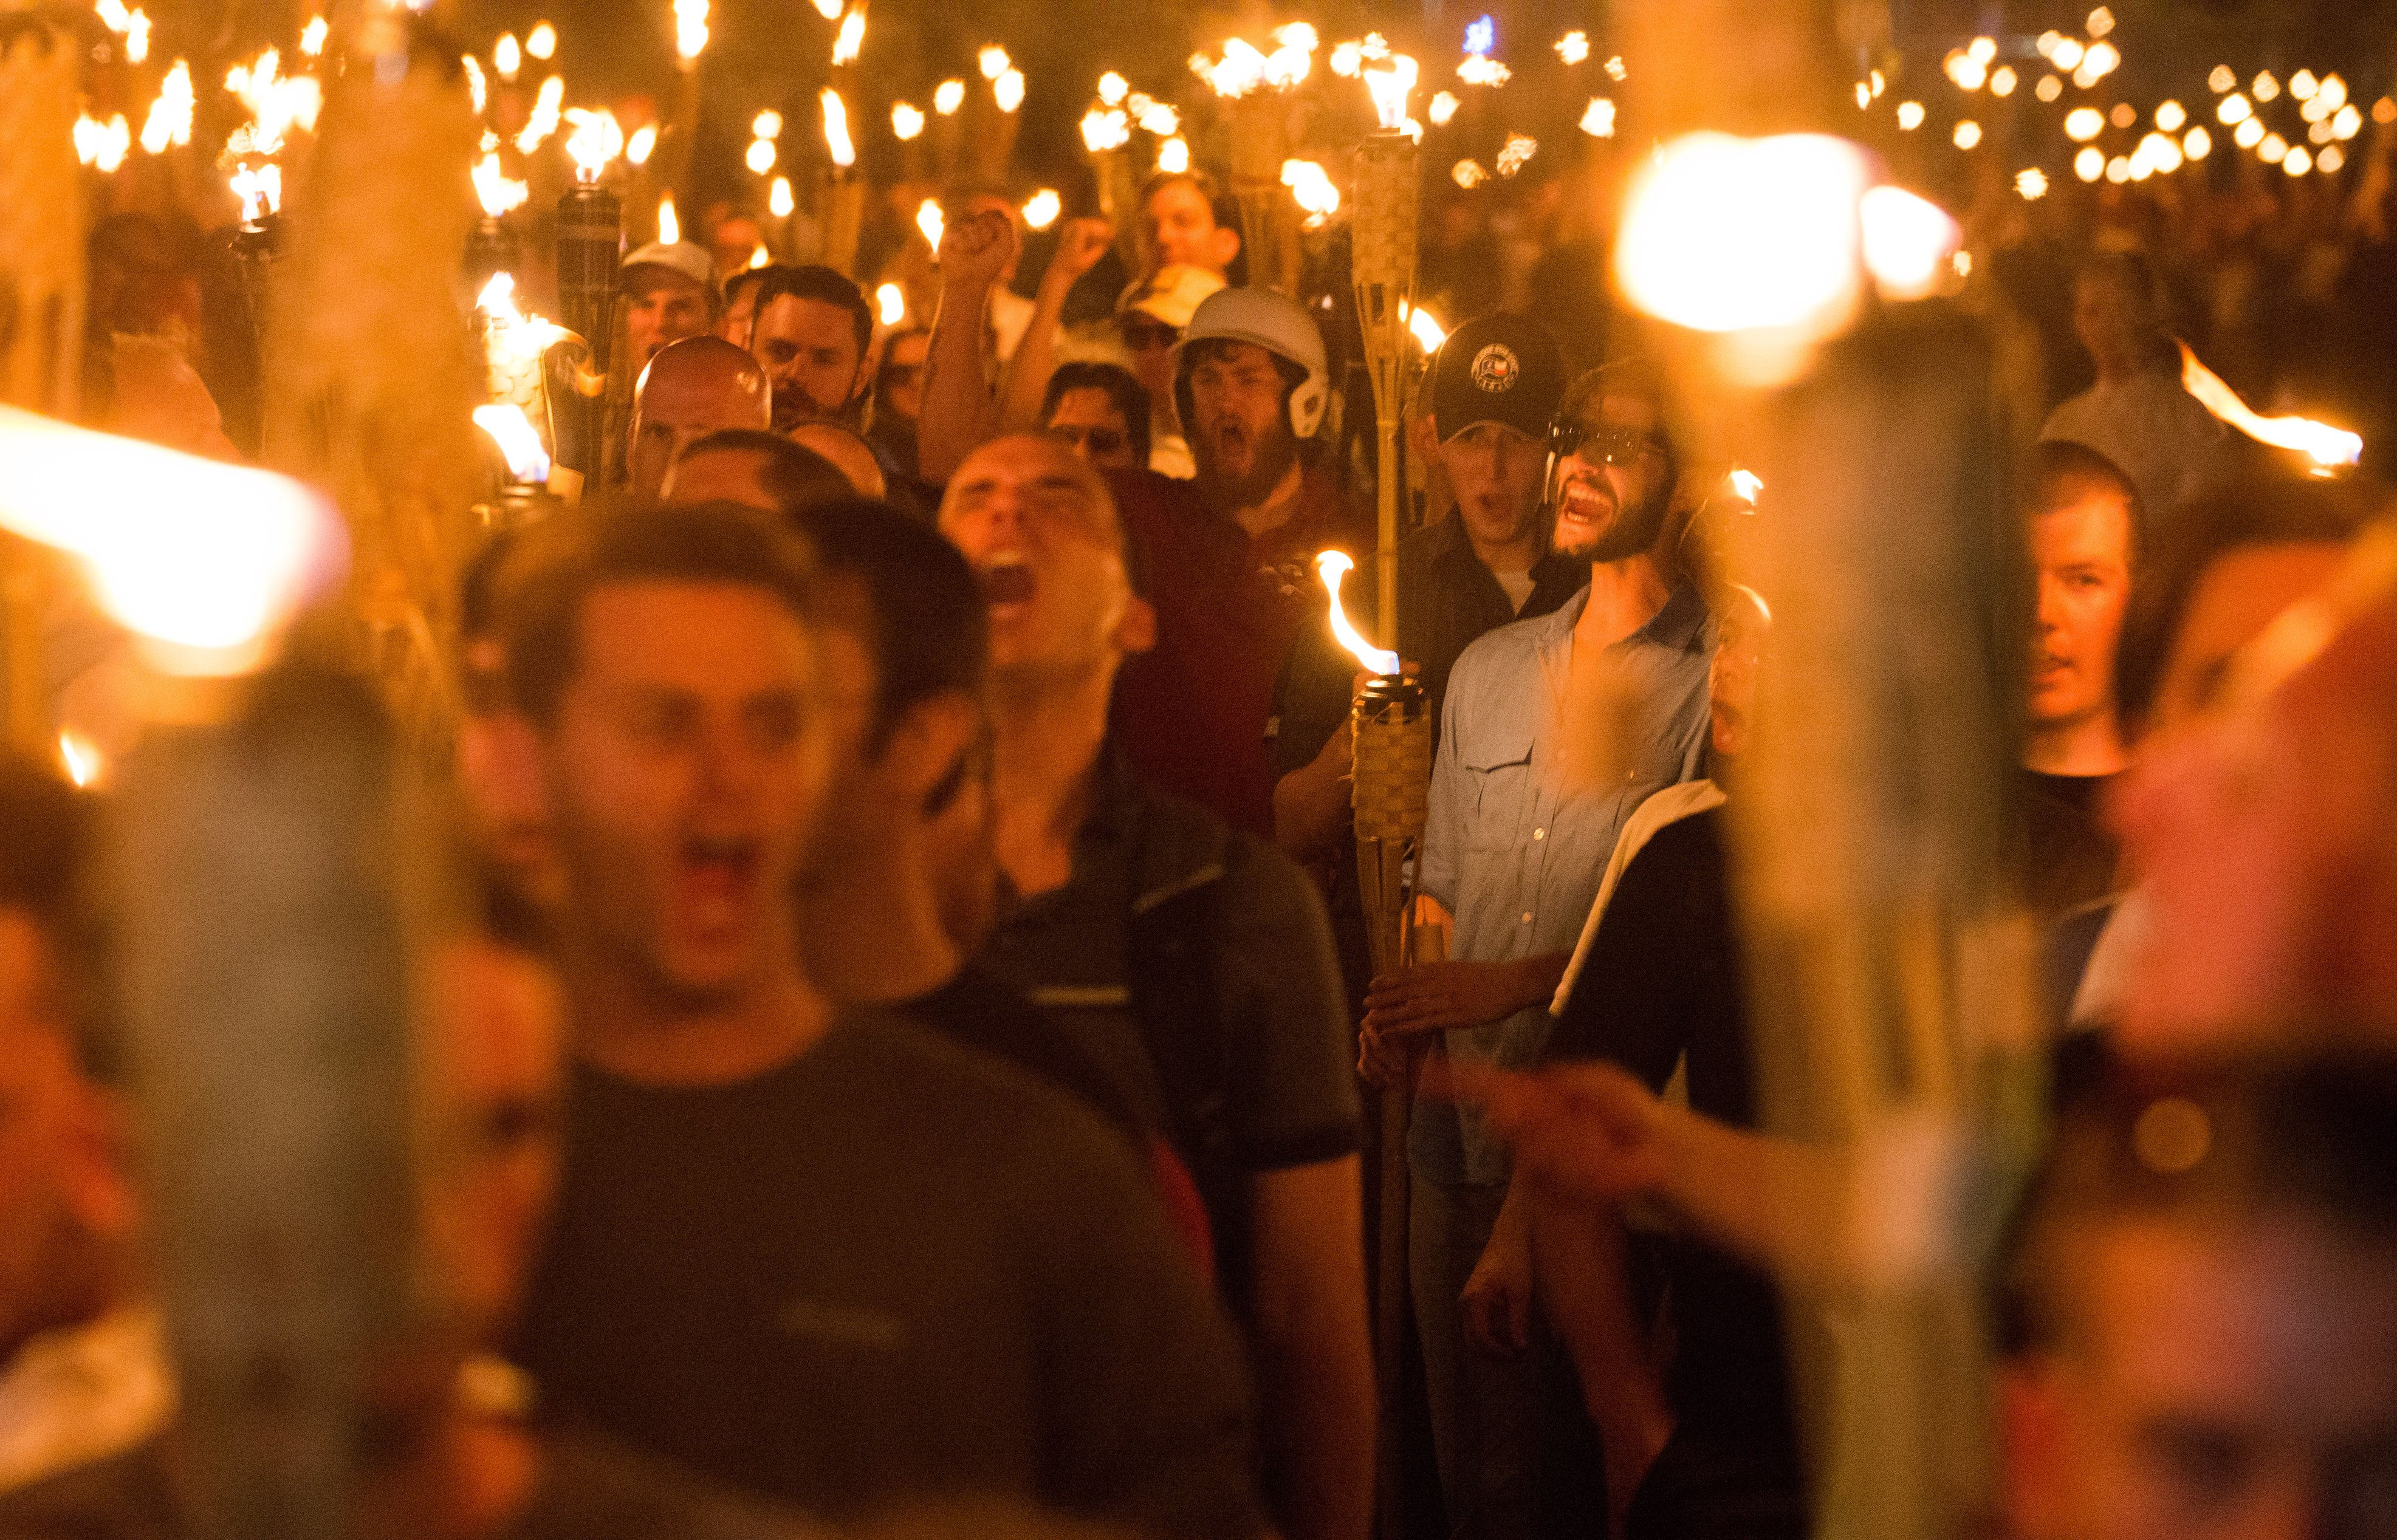 White nationalists and neo-Nazis marching on Aug. 11, 2017, the night before the Unite the Right rally inCharlottesvill